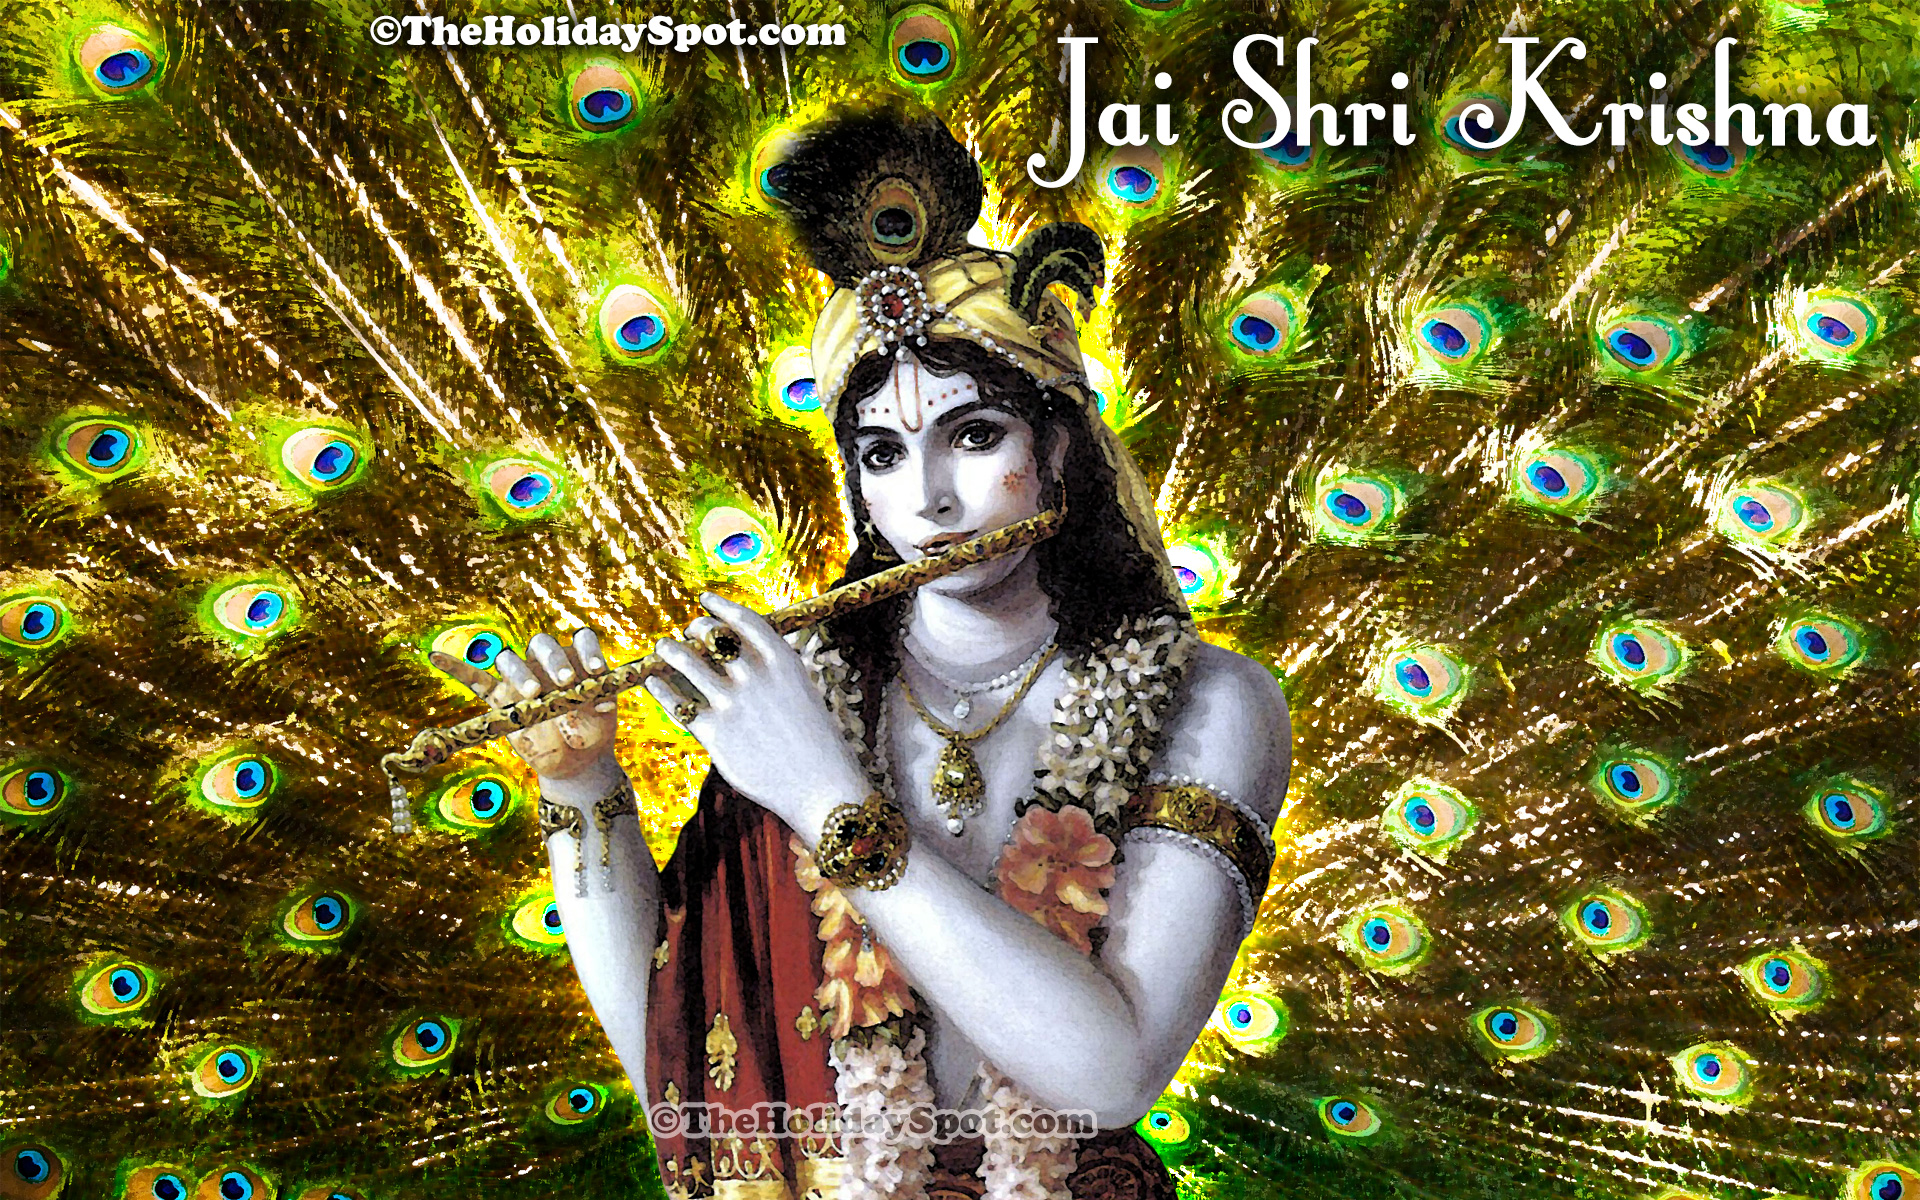 Lord krishna wallpaper laptop - Adorn Your Desktop With This Wonderful Wallpaper Of Lord Krishna